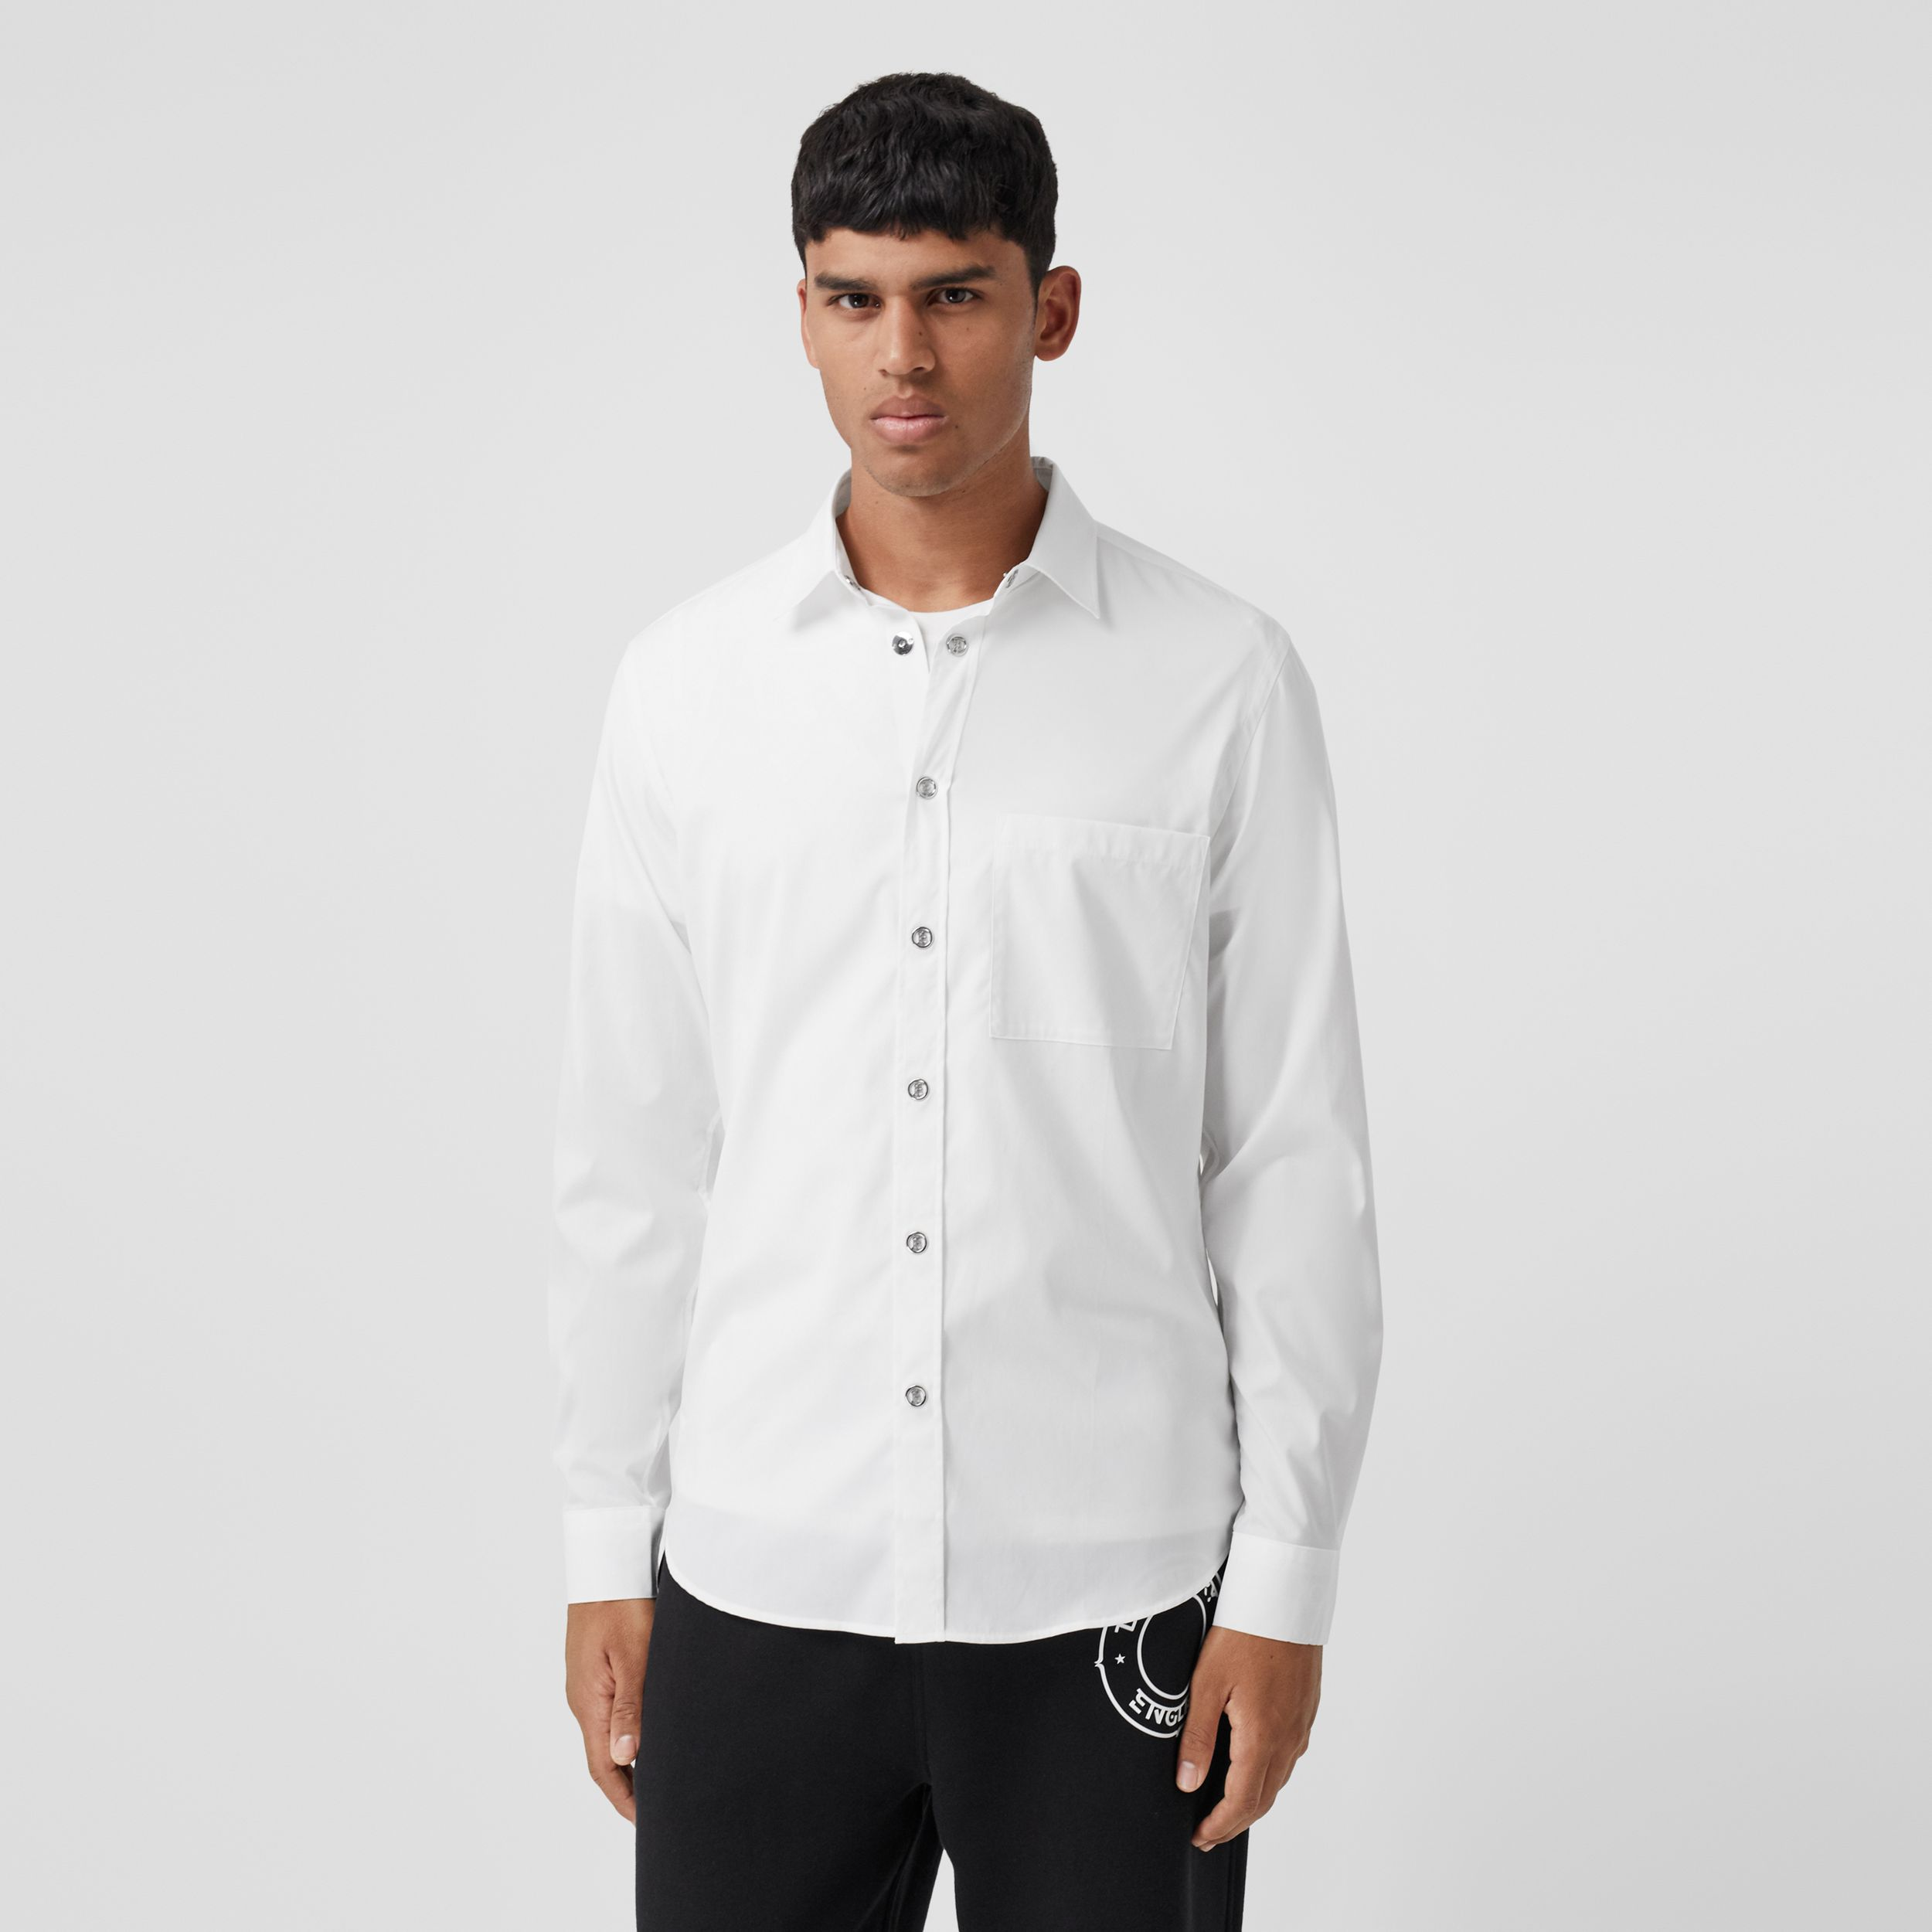 Monogram Motif Stretch Cotton Shirt in White - Men | Burberry - 1